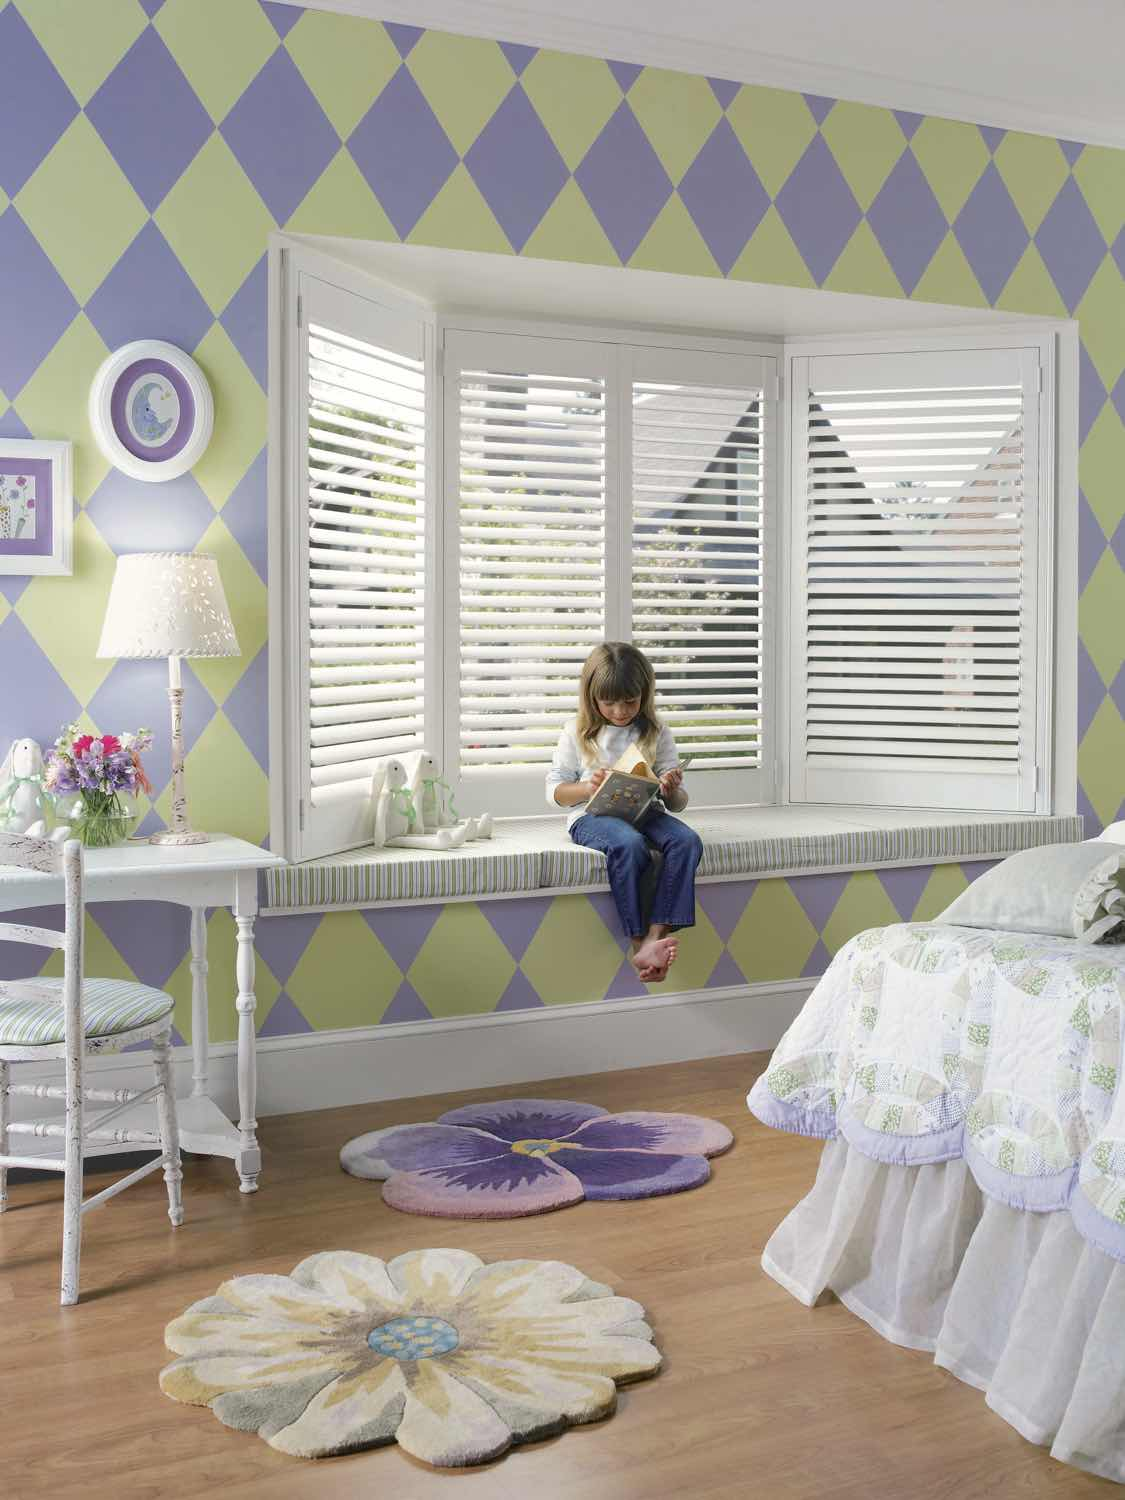 Bedroom Shutters - Today's Interiors